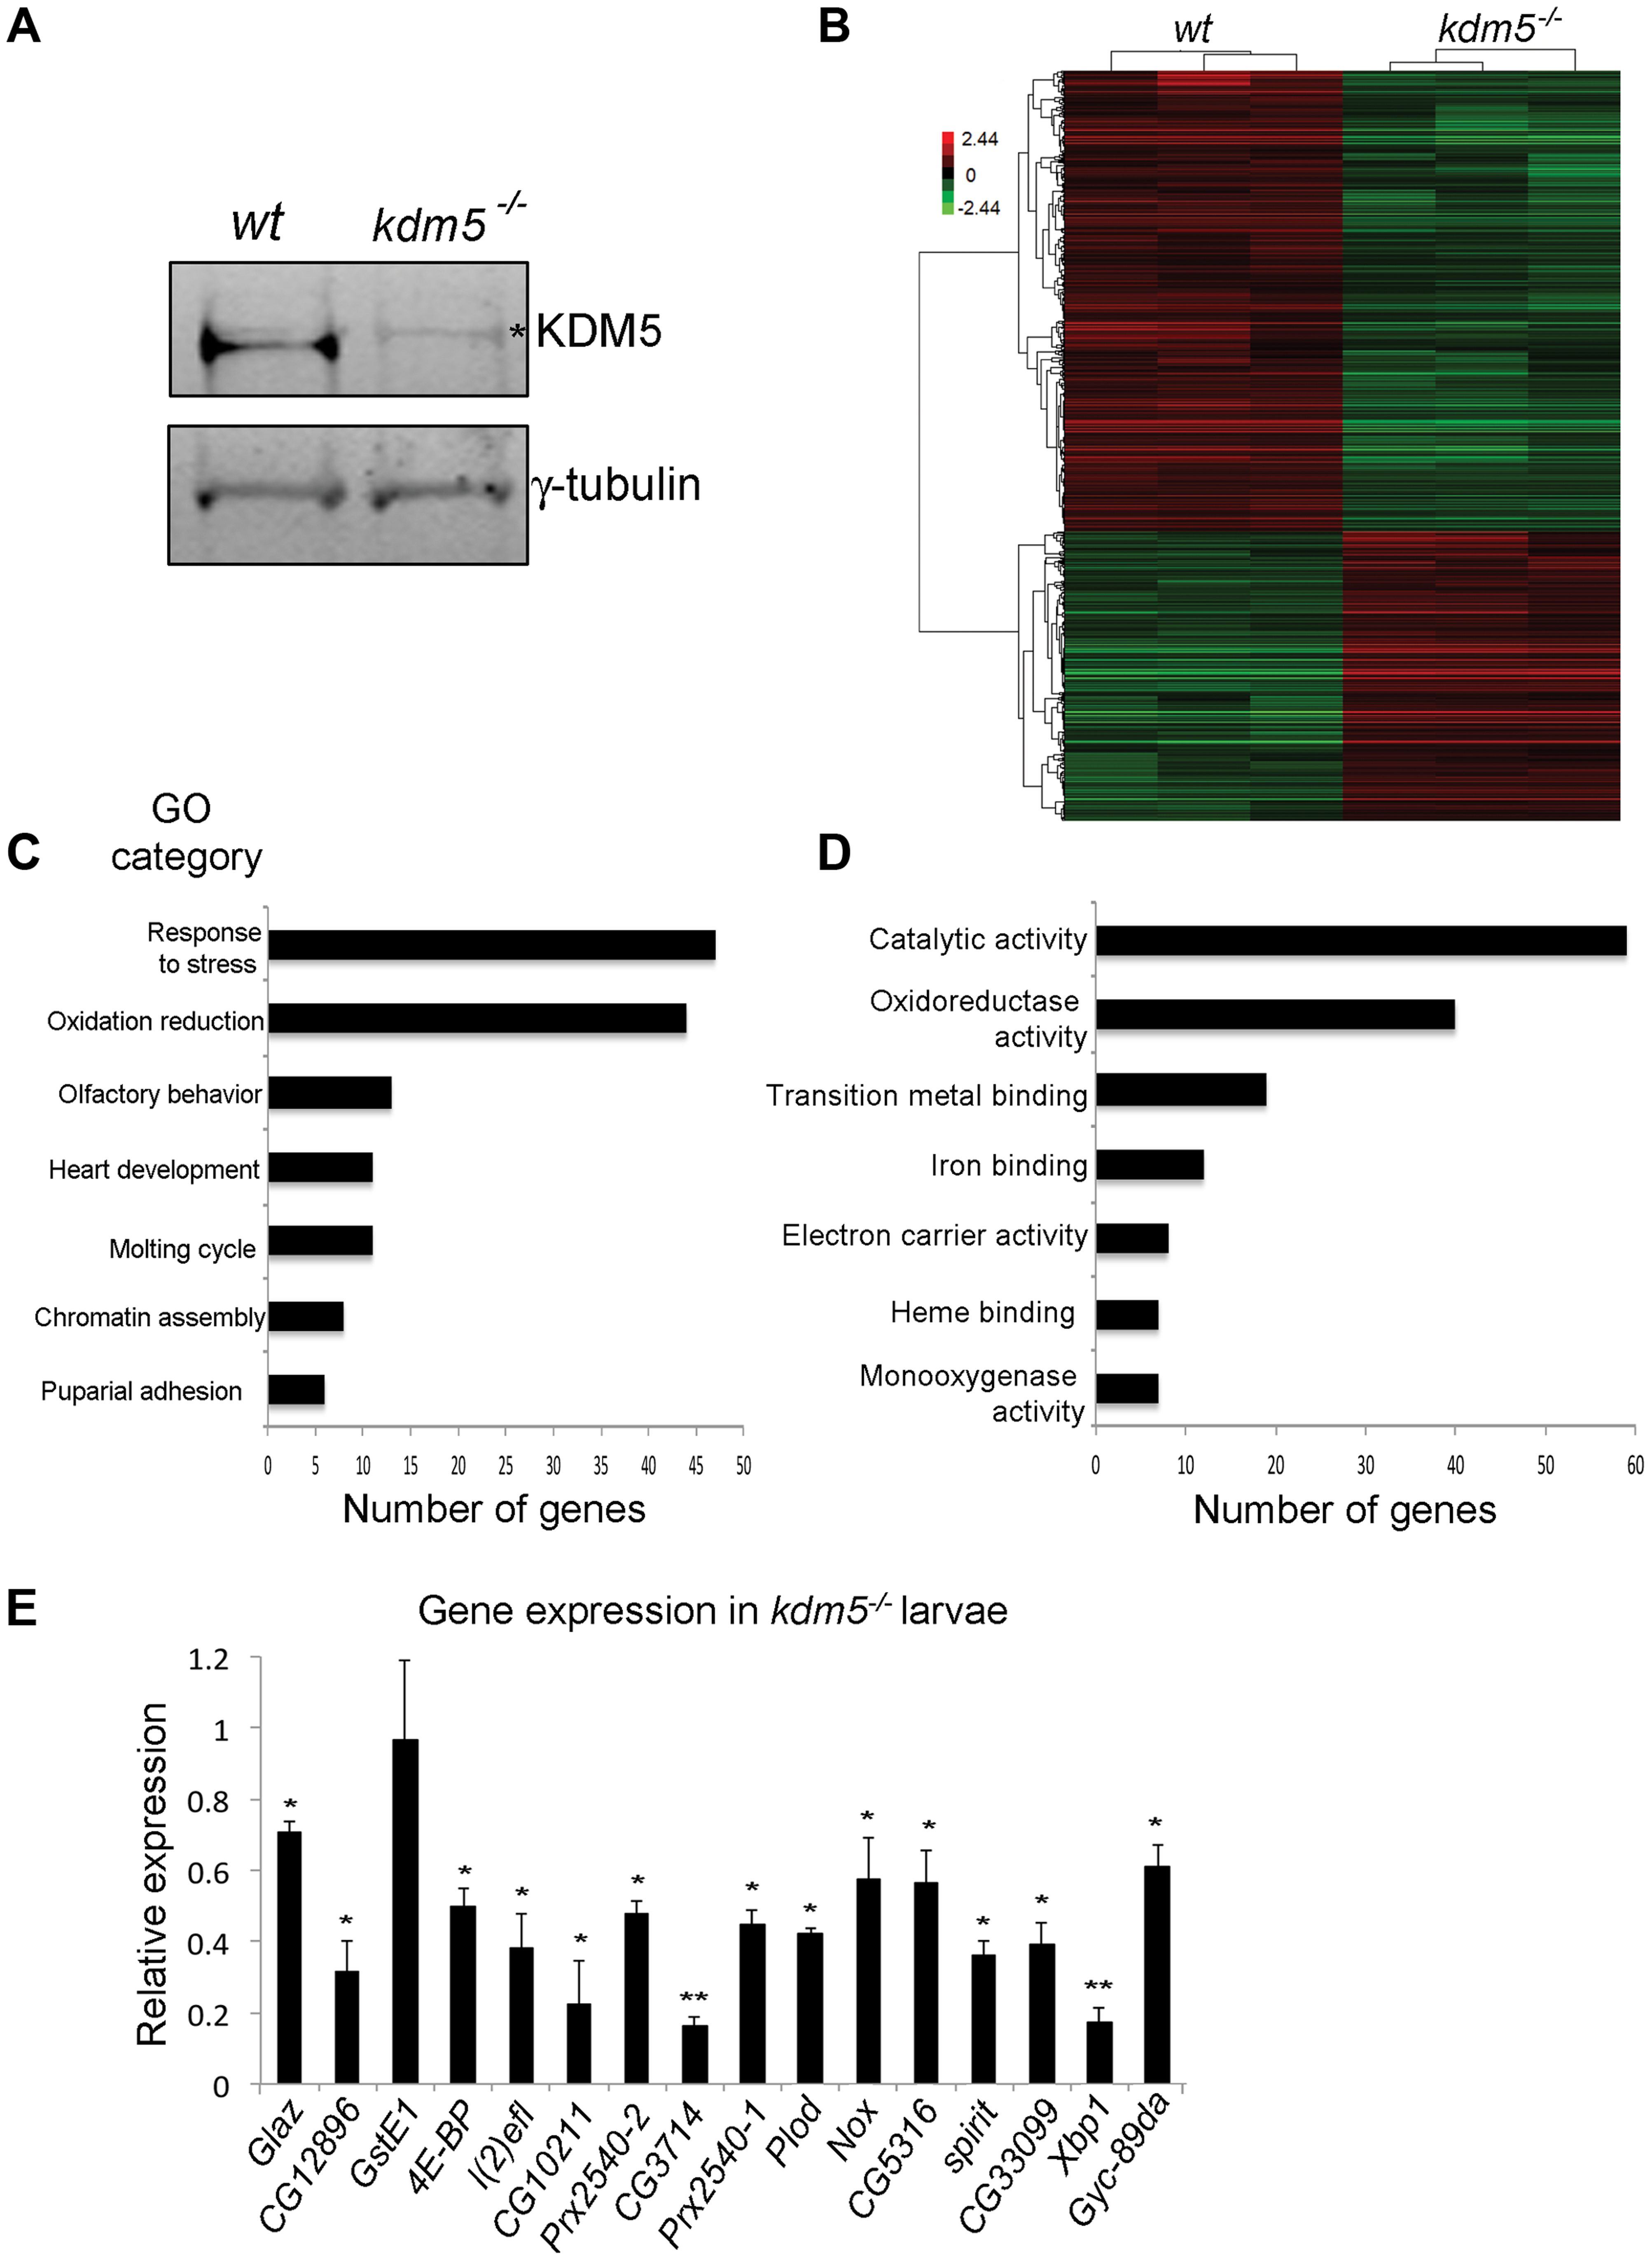 KDM5 mutants show reduced expression of genes required to reduce oxidative stress.